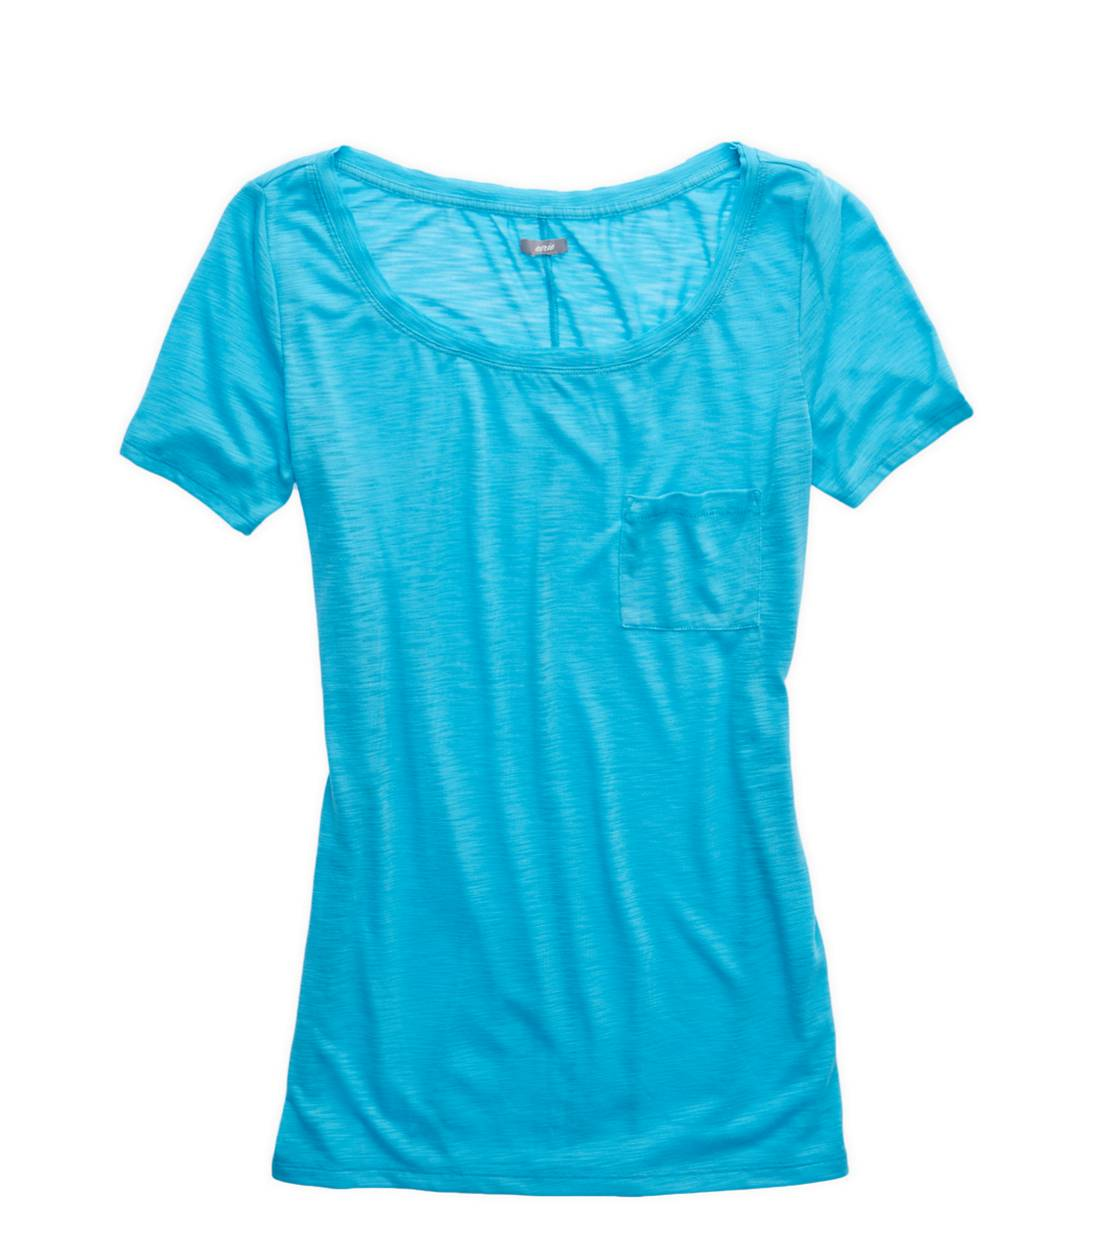 Primal Aerie Slim Fit Scoop Neck Pocket T-Shirt